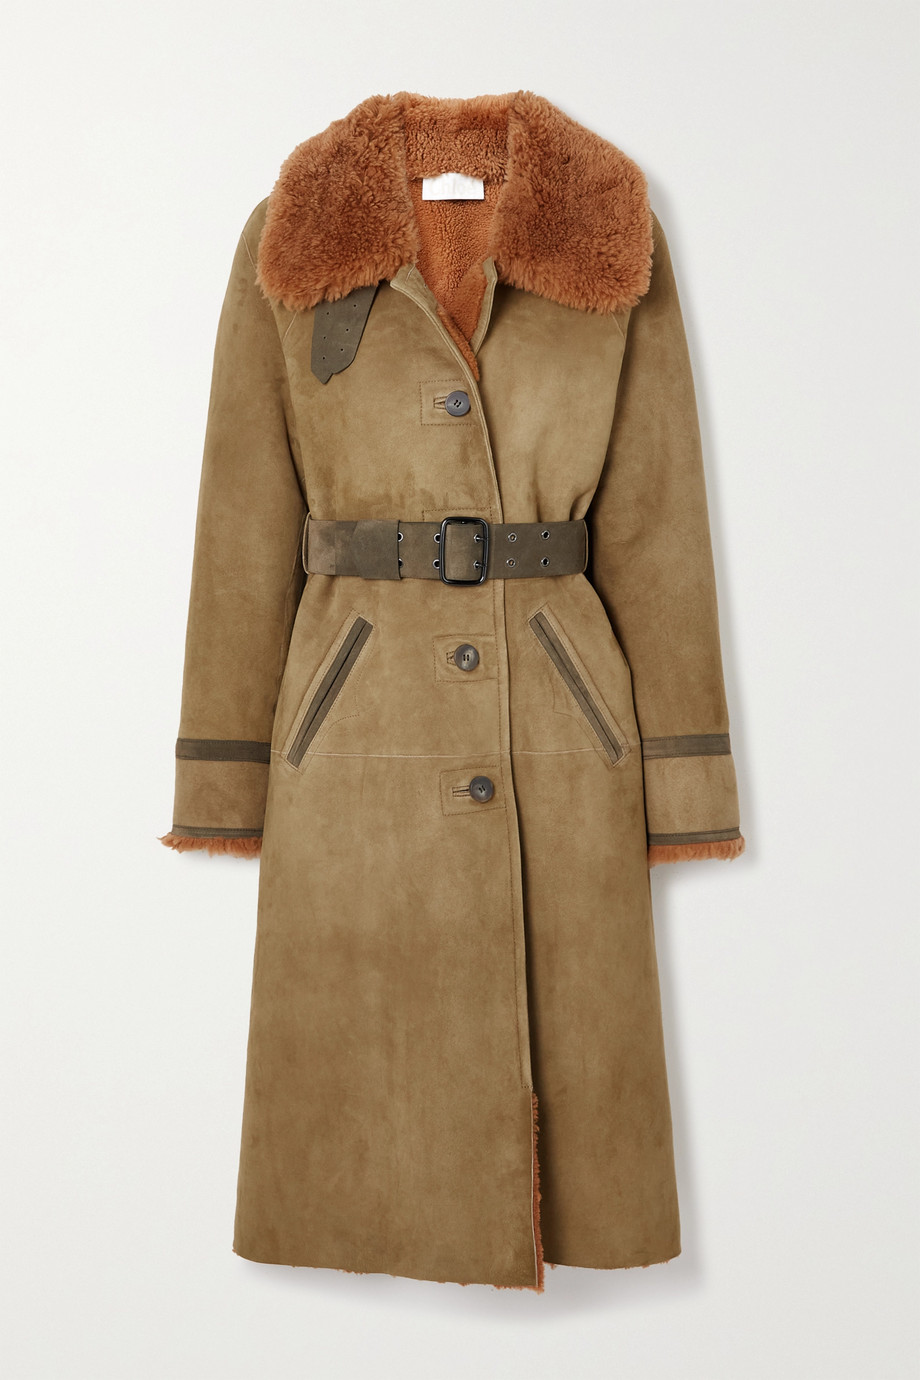 Chloé Belted shearling-trimmed suede coat